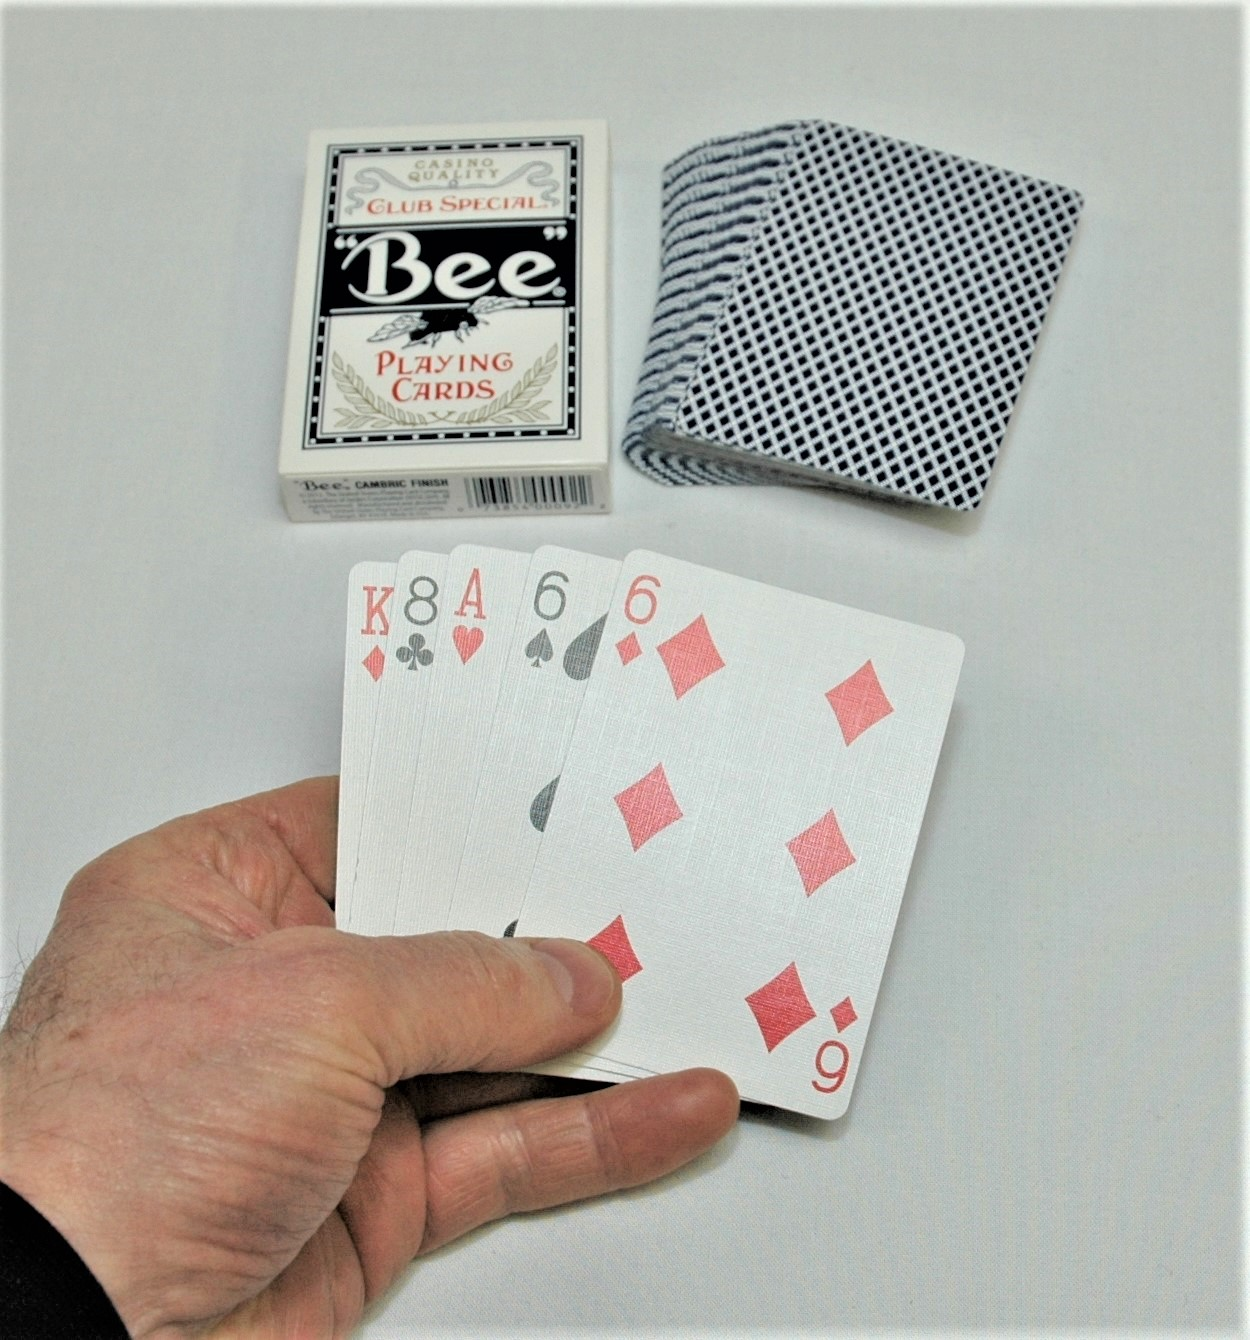 playing cards by bee no 92 \u2013 ok sports and gamesbee 92